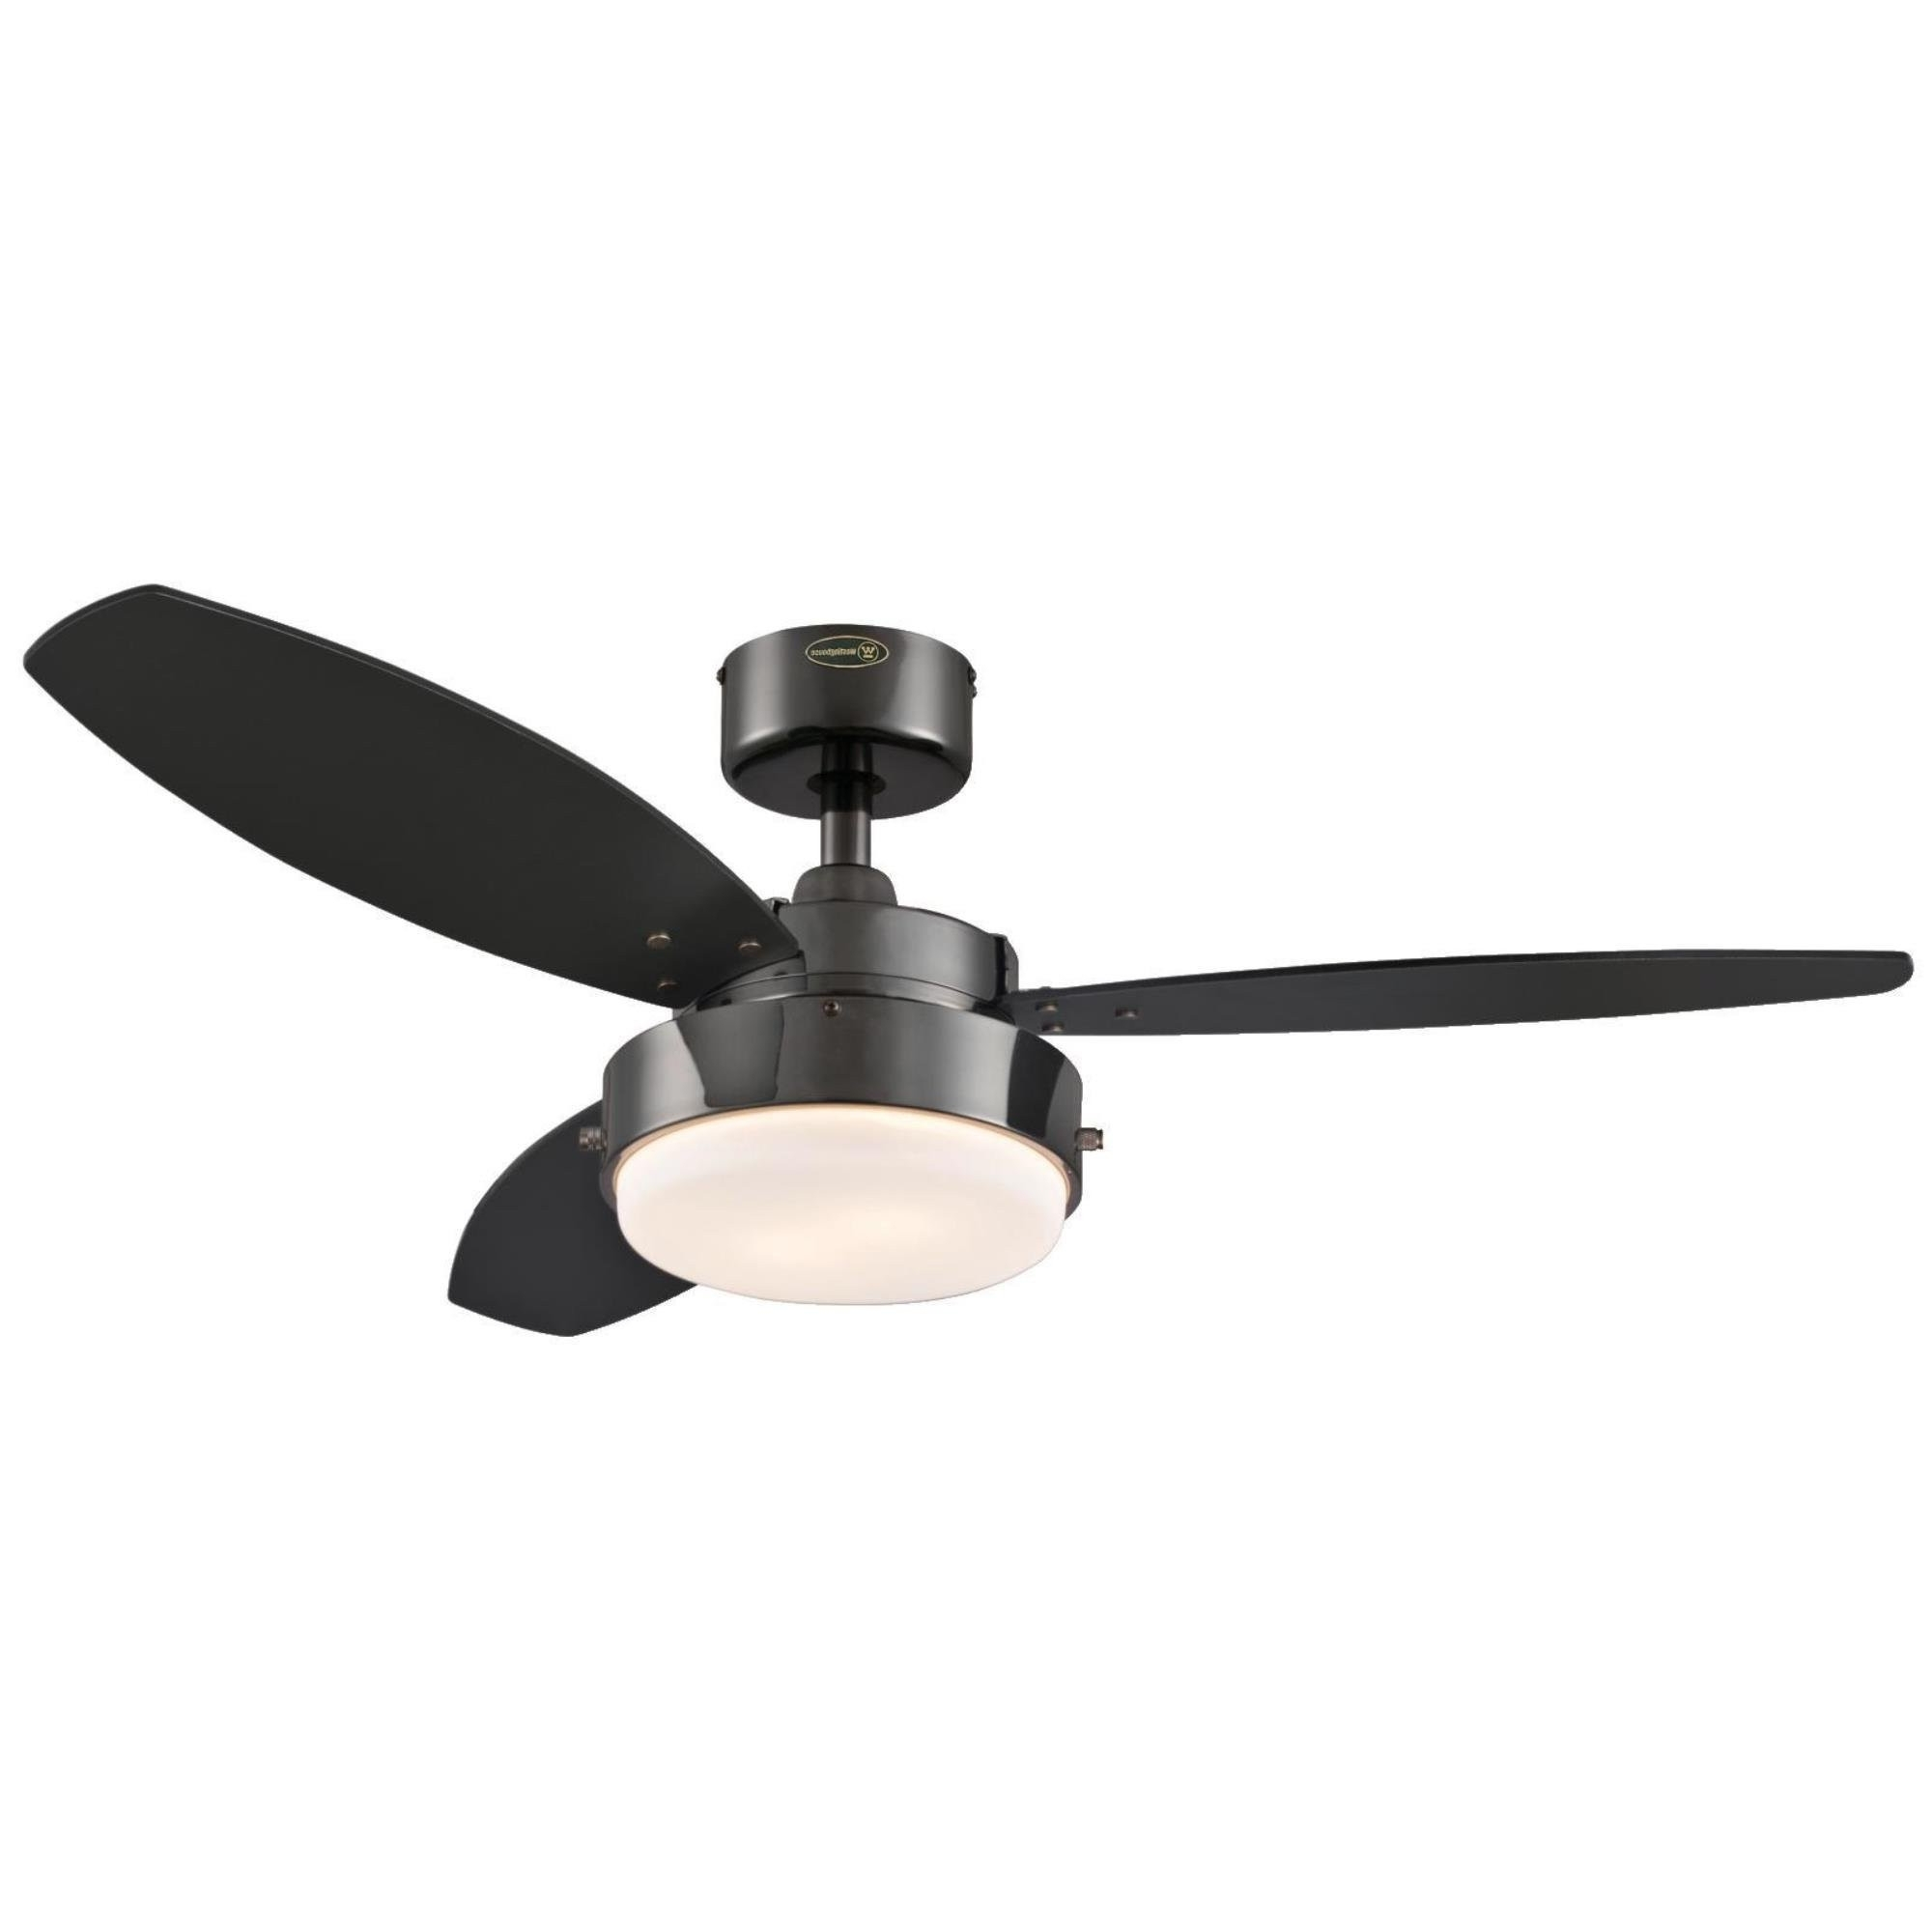 Recent Indoor Outdoor Ceiling Fan With Light Best Of St Ceiling Fan With Throughout Outdoor Ceiling Fans With Light And Remote (View 18 of 20)